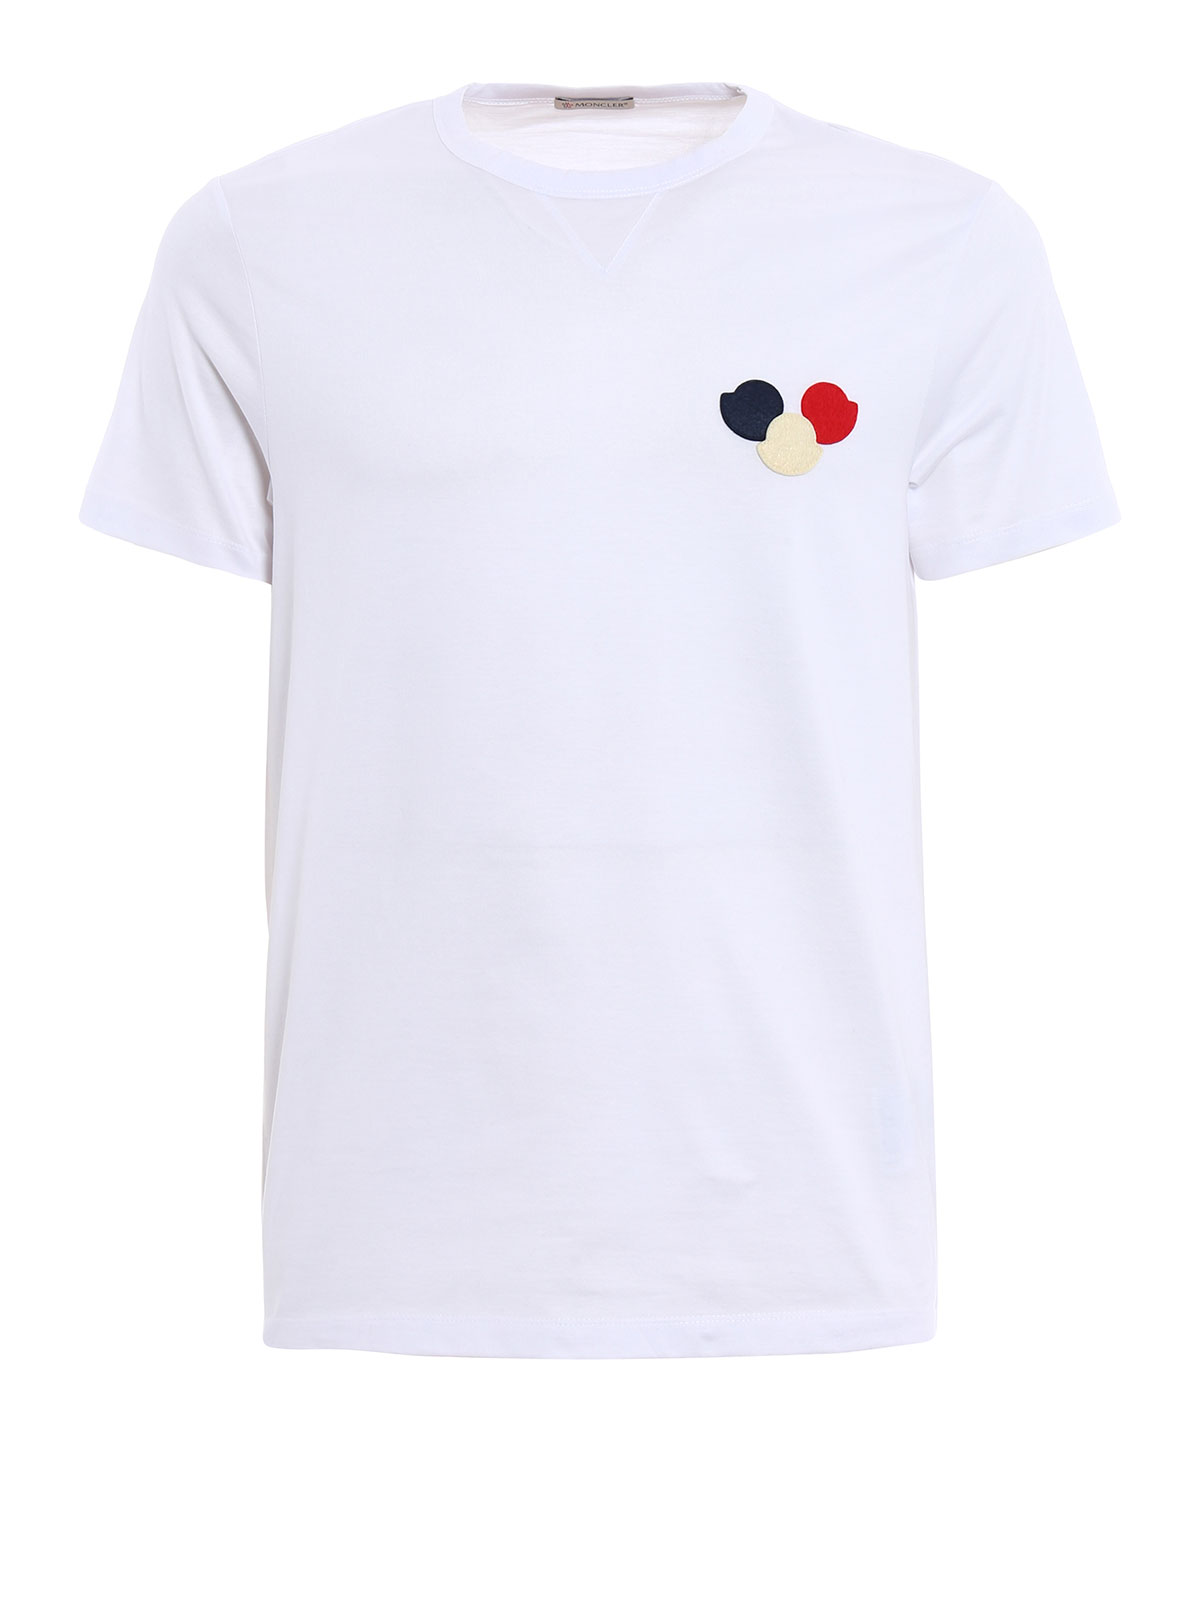 tricolour logo appliqu tee by moncler t shirts ikrix. Black Bedroom Furniture Sets. Home Design Ideas